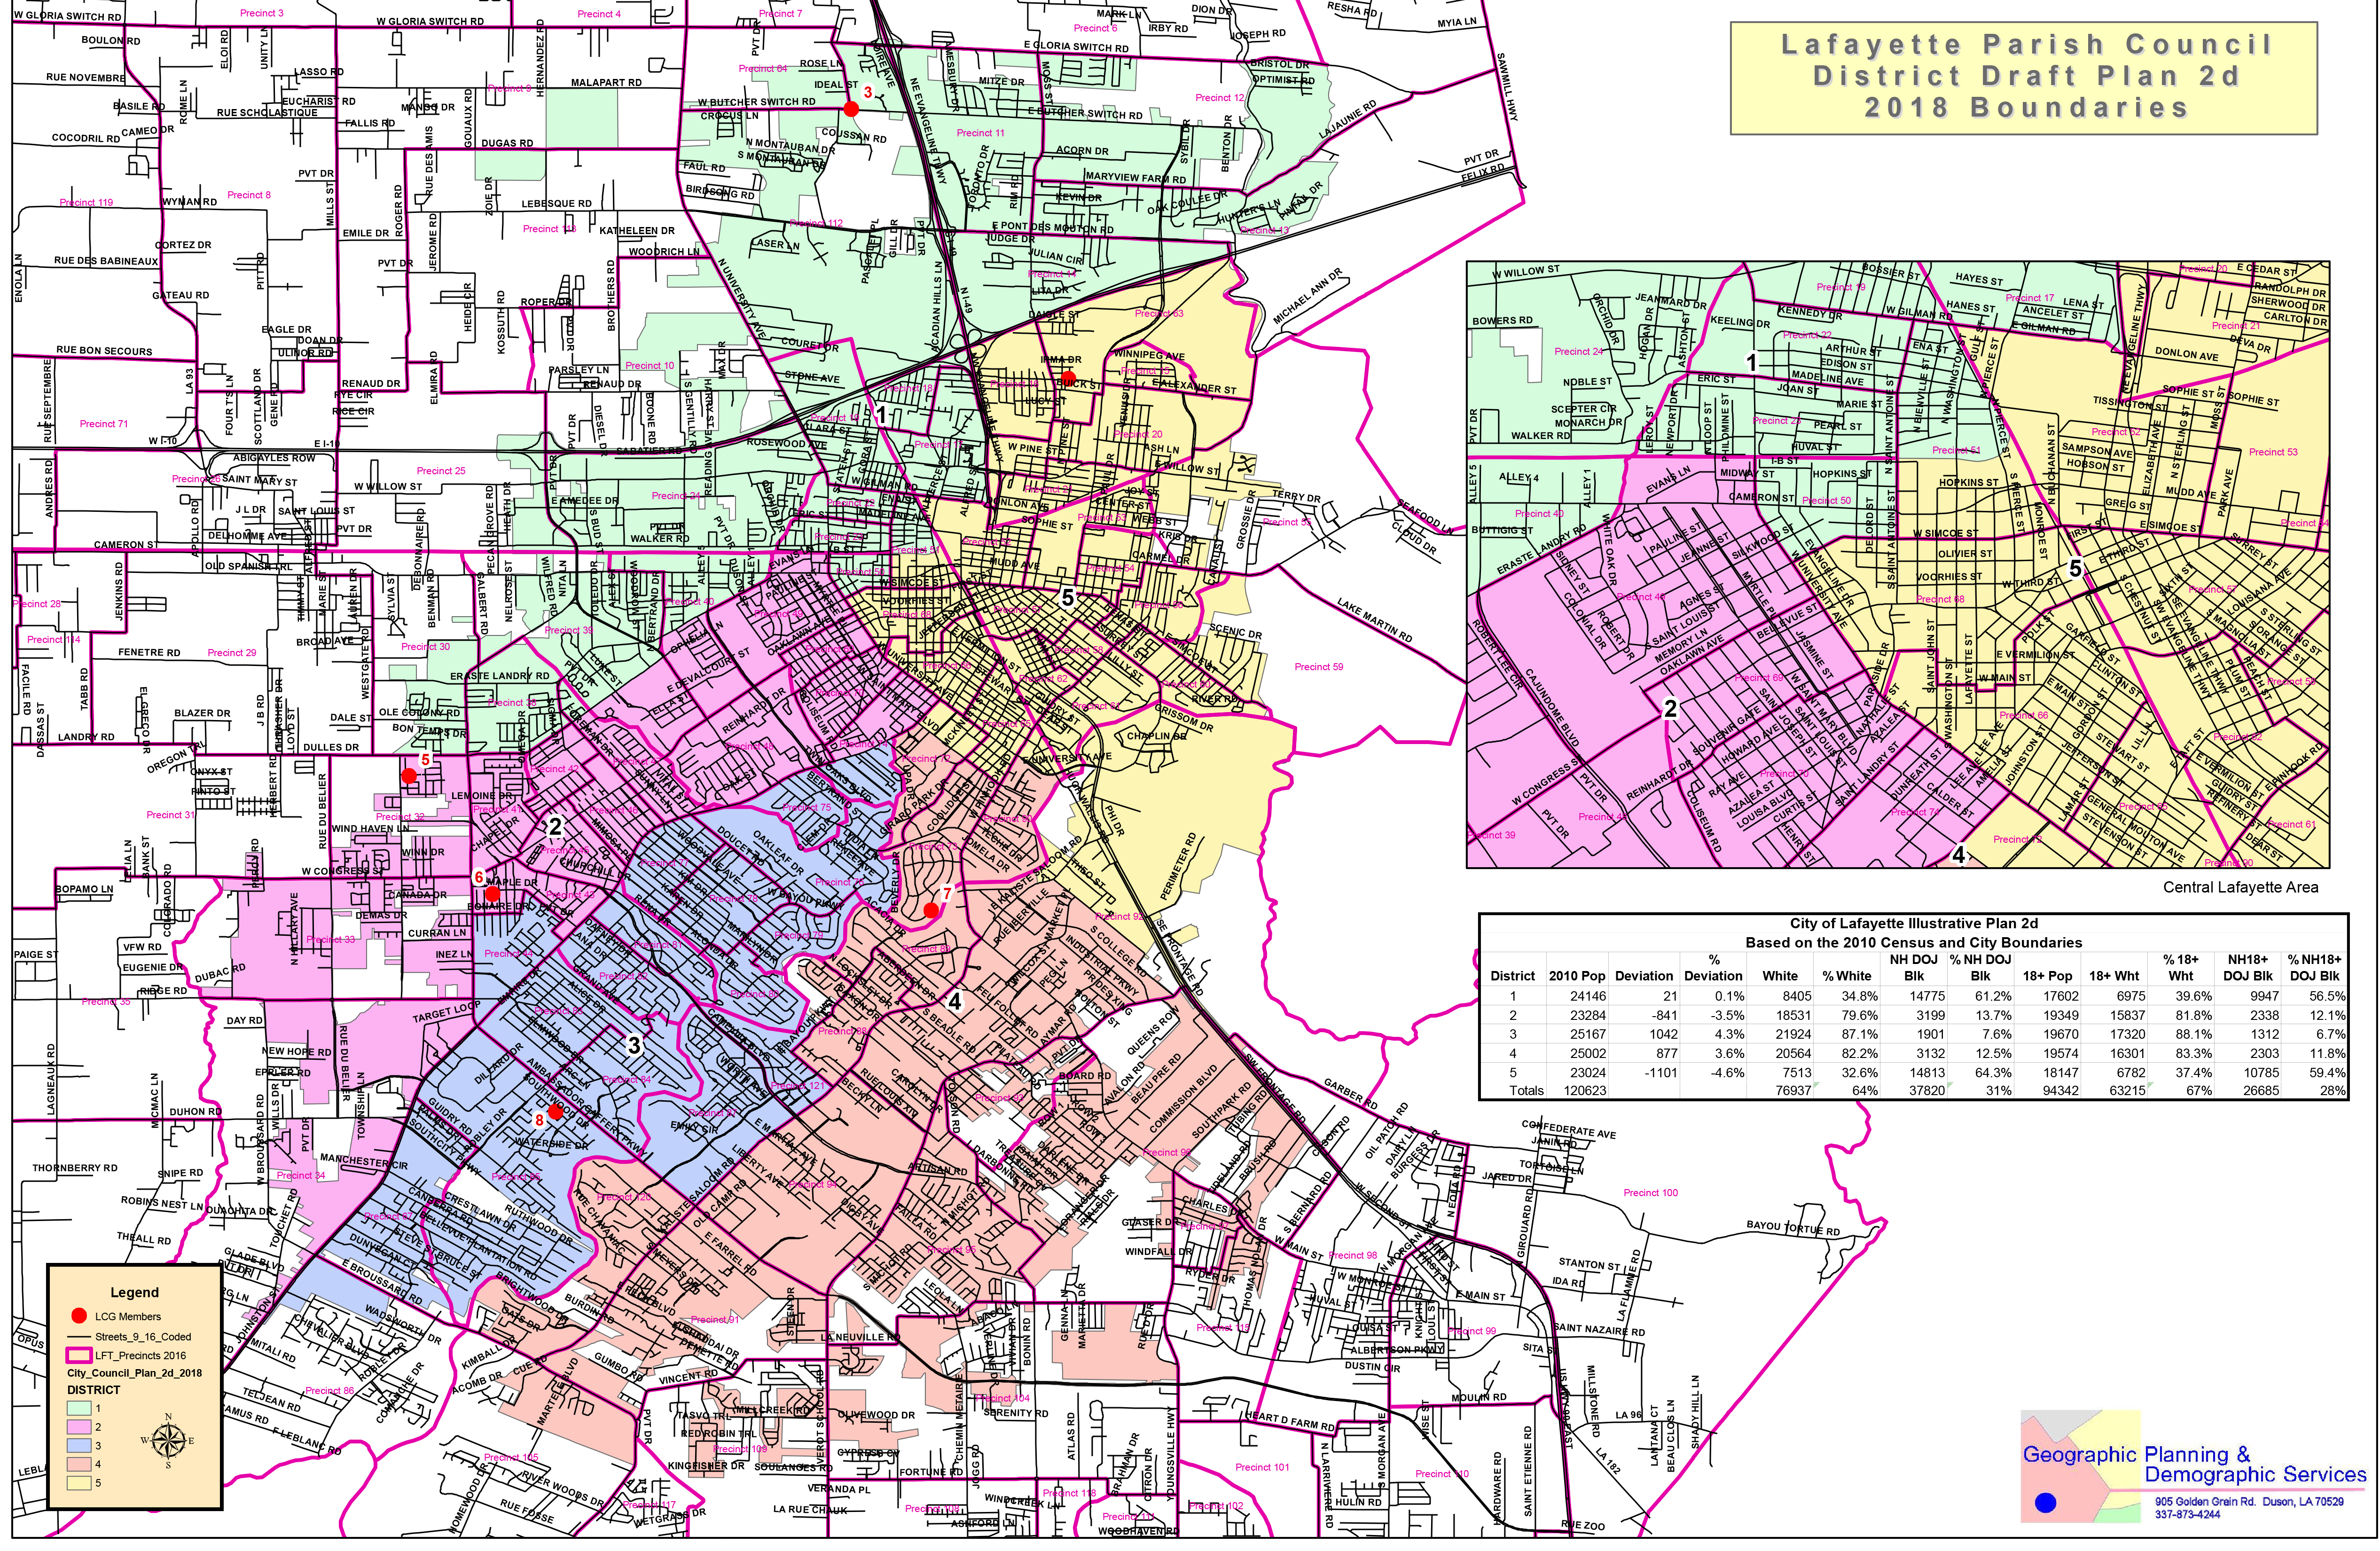 First Look At The District Boundaries For The Proposed New City And Parish Councils In Lafayette